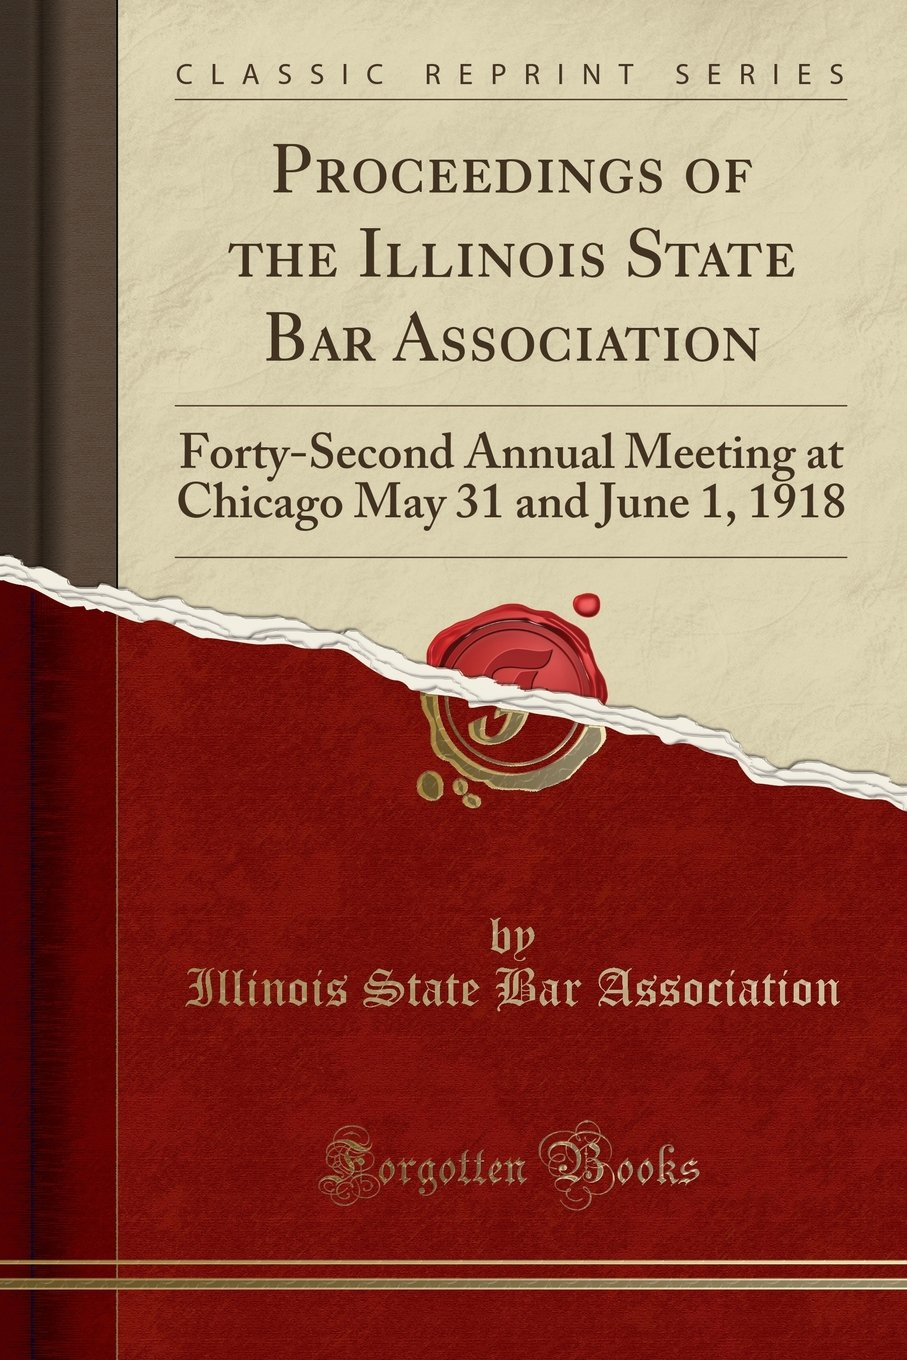 Read Online Proceedings of the Illinois State Bar Association: Forty-Second Annual Meeting at Chicago May 31 and June 1, 1918 (Classic Reprint) PDF